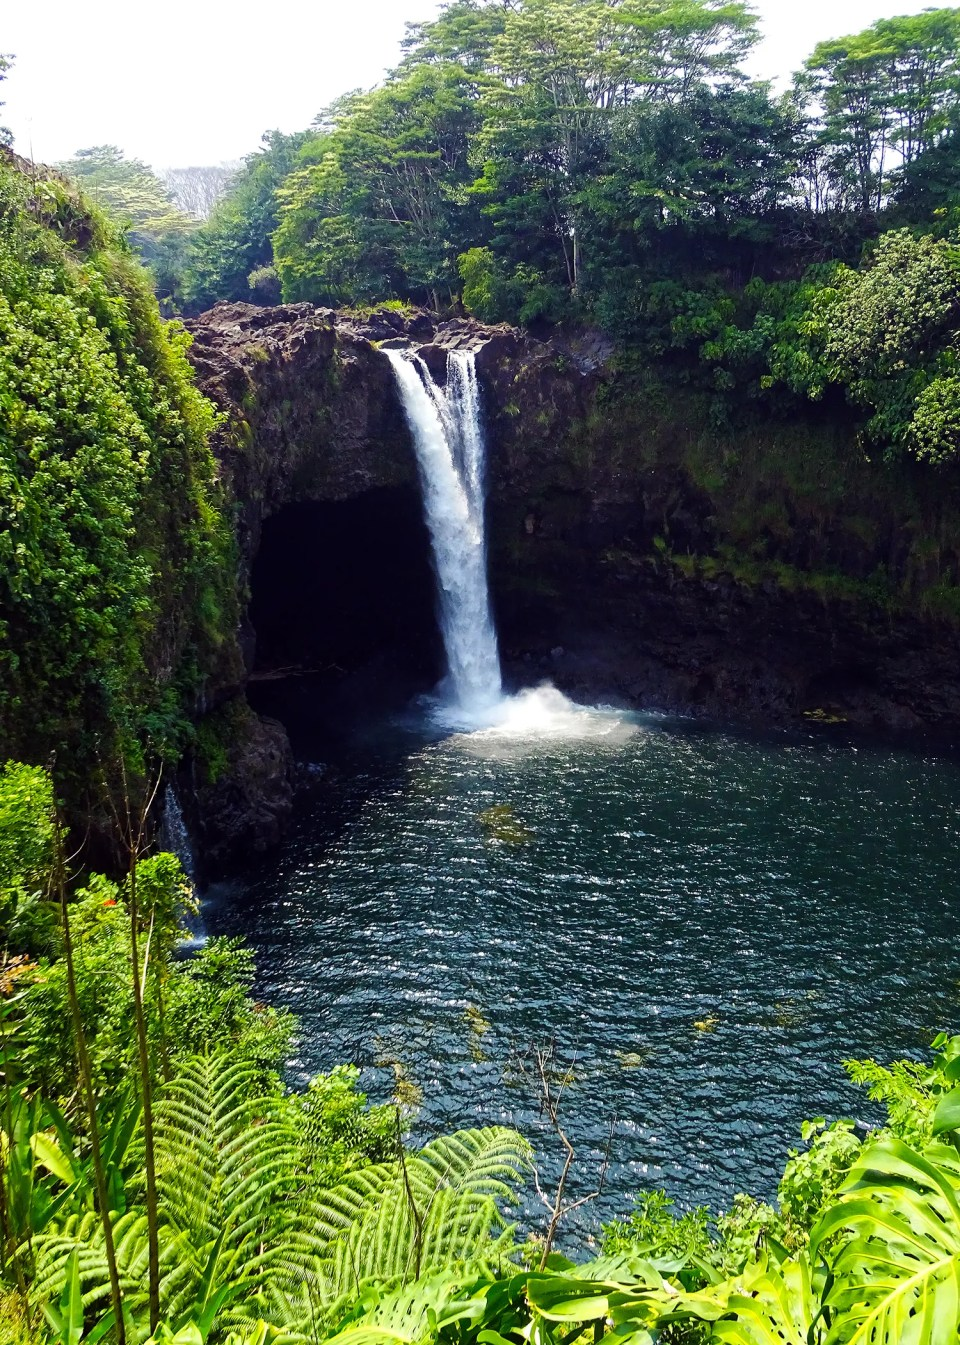 The Big Island of Hawaii